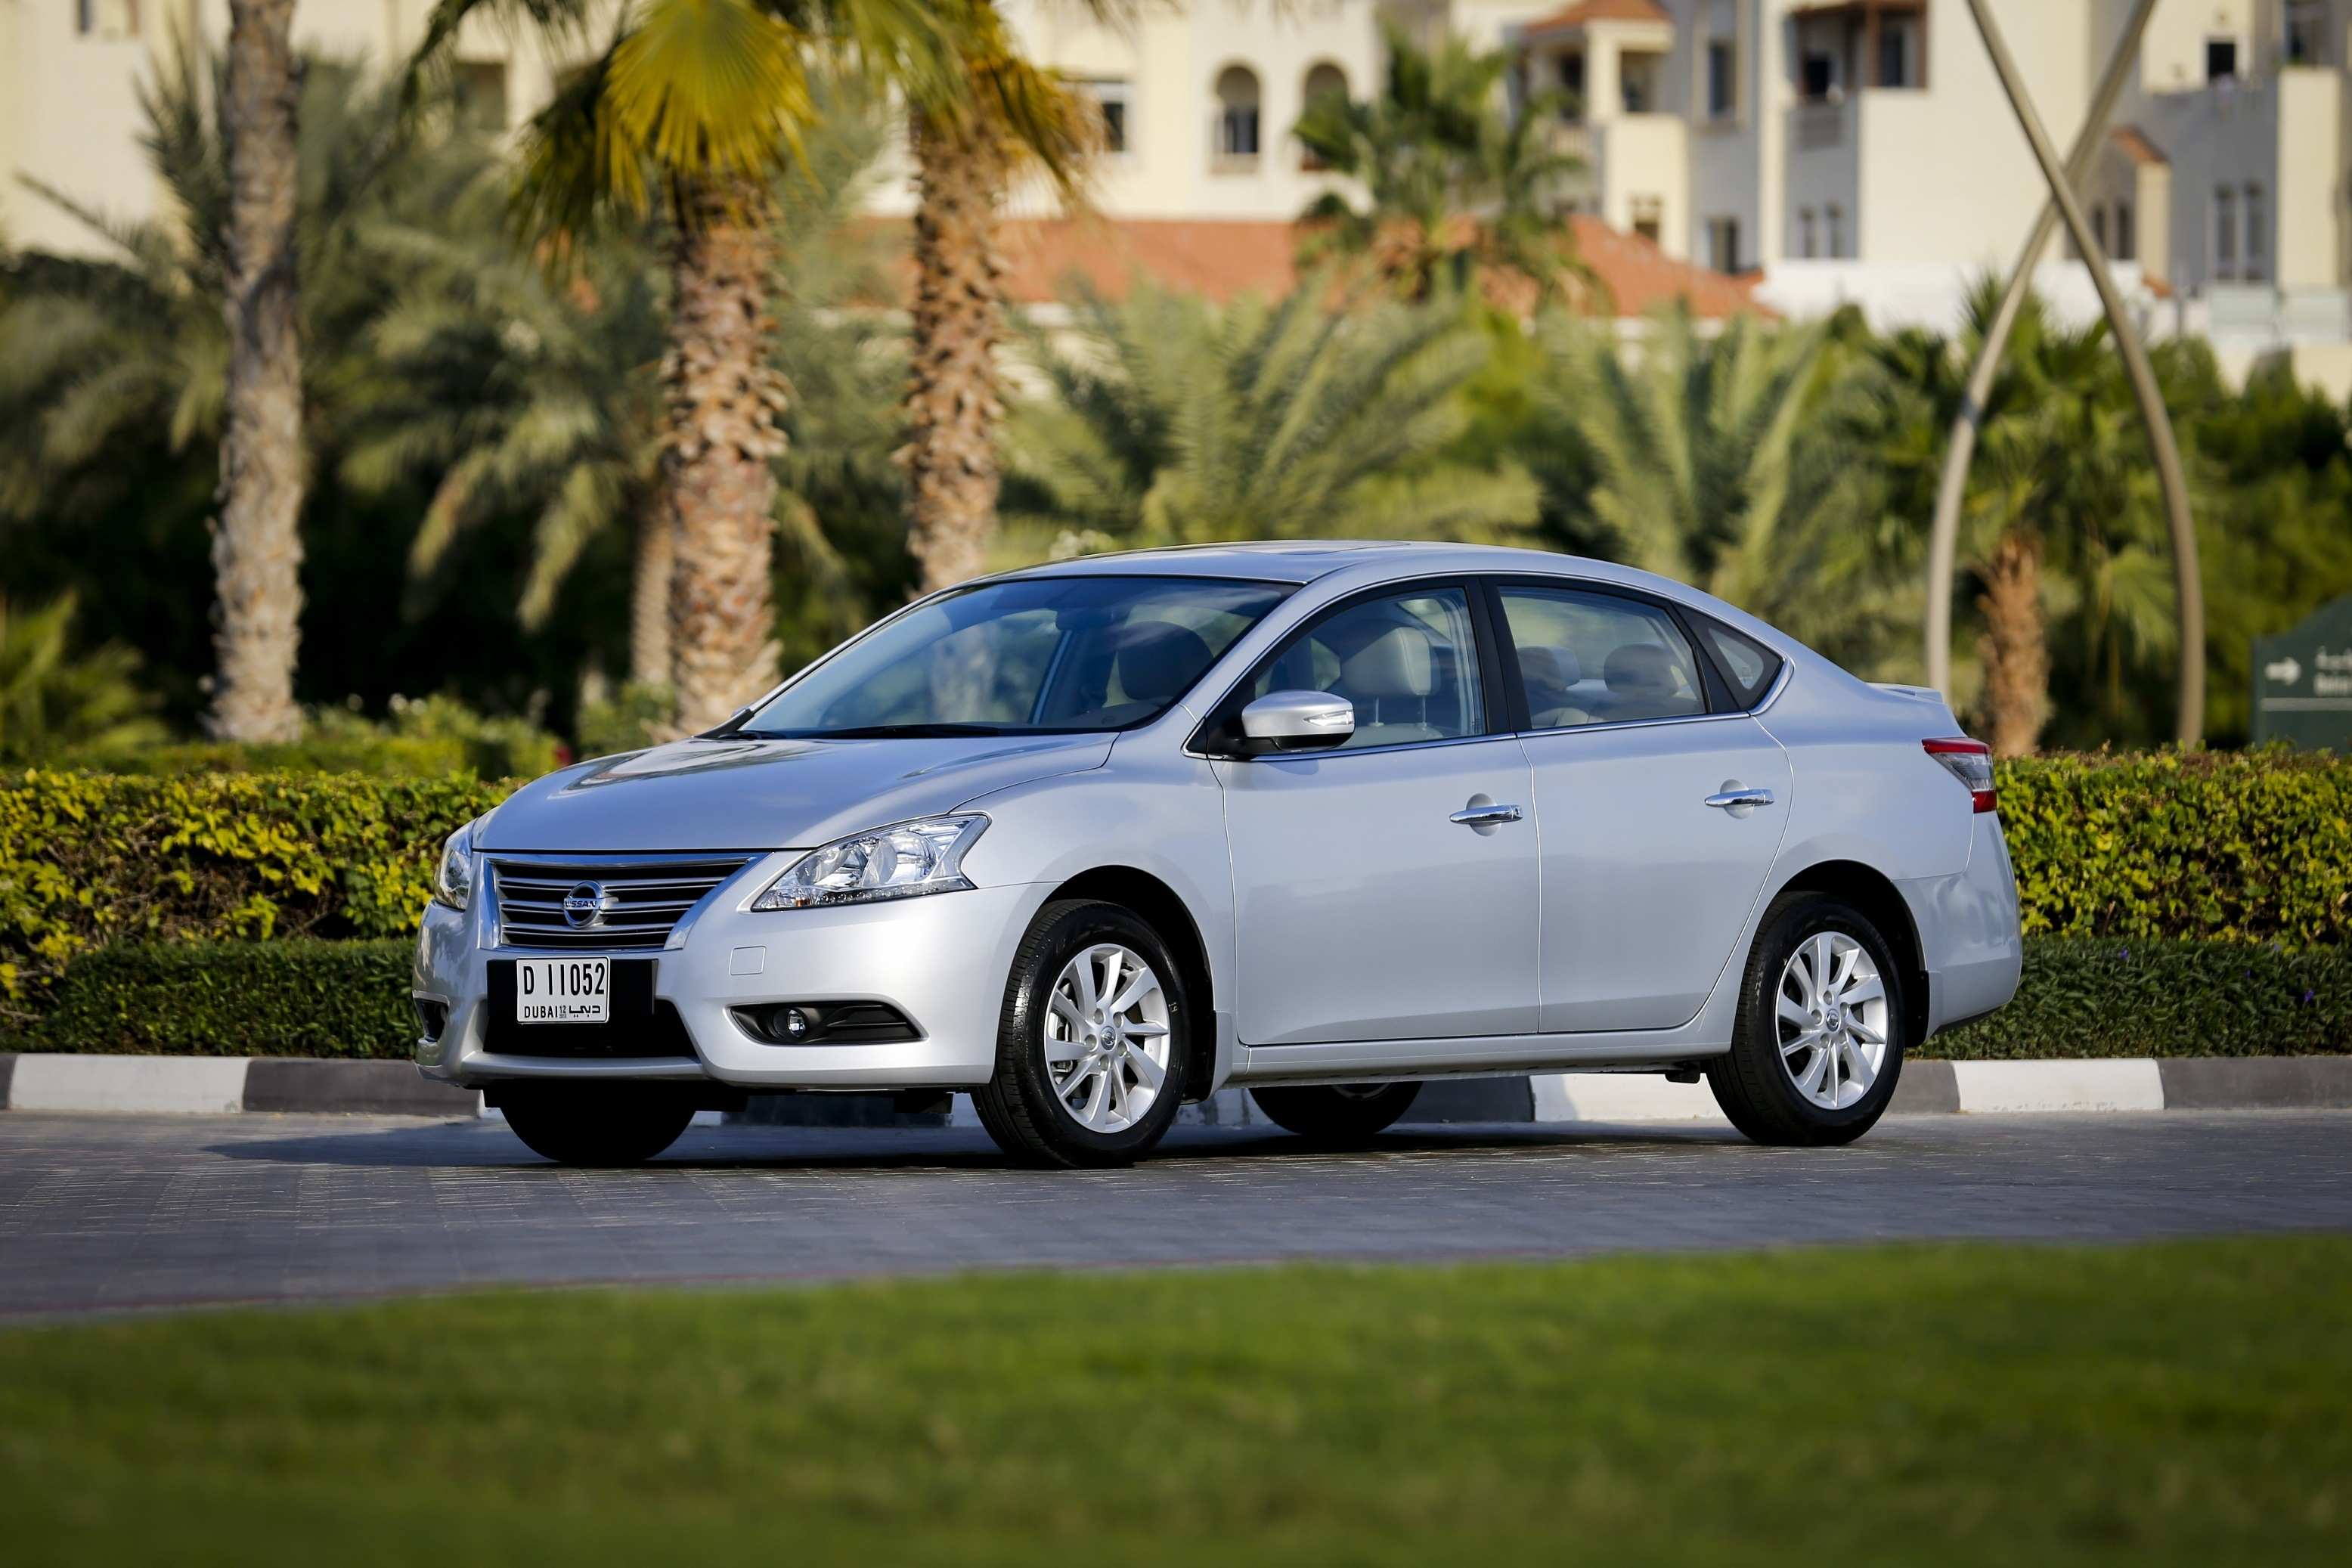 55 The Best 2019 Nissan Sunny Uae Egypt Price